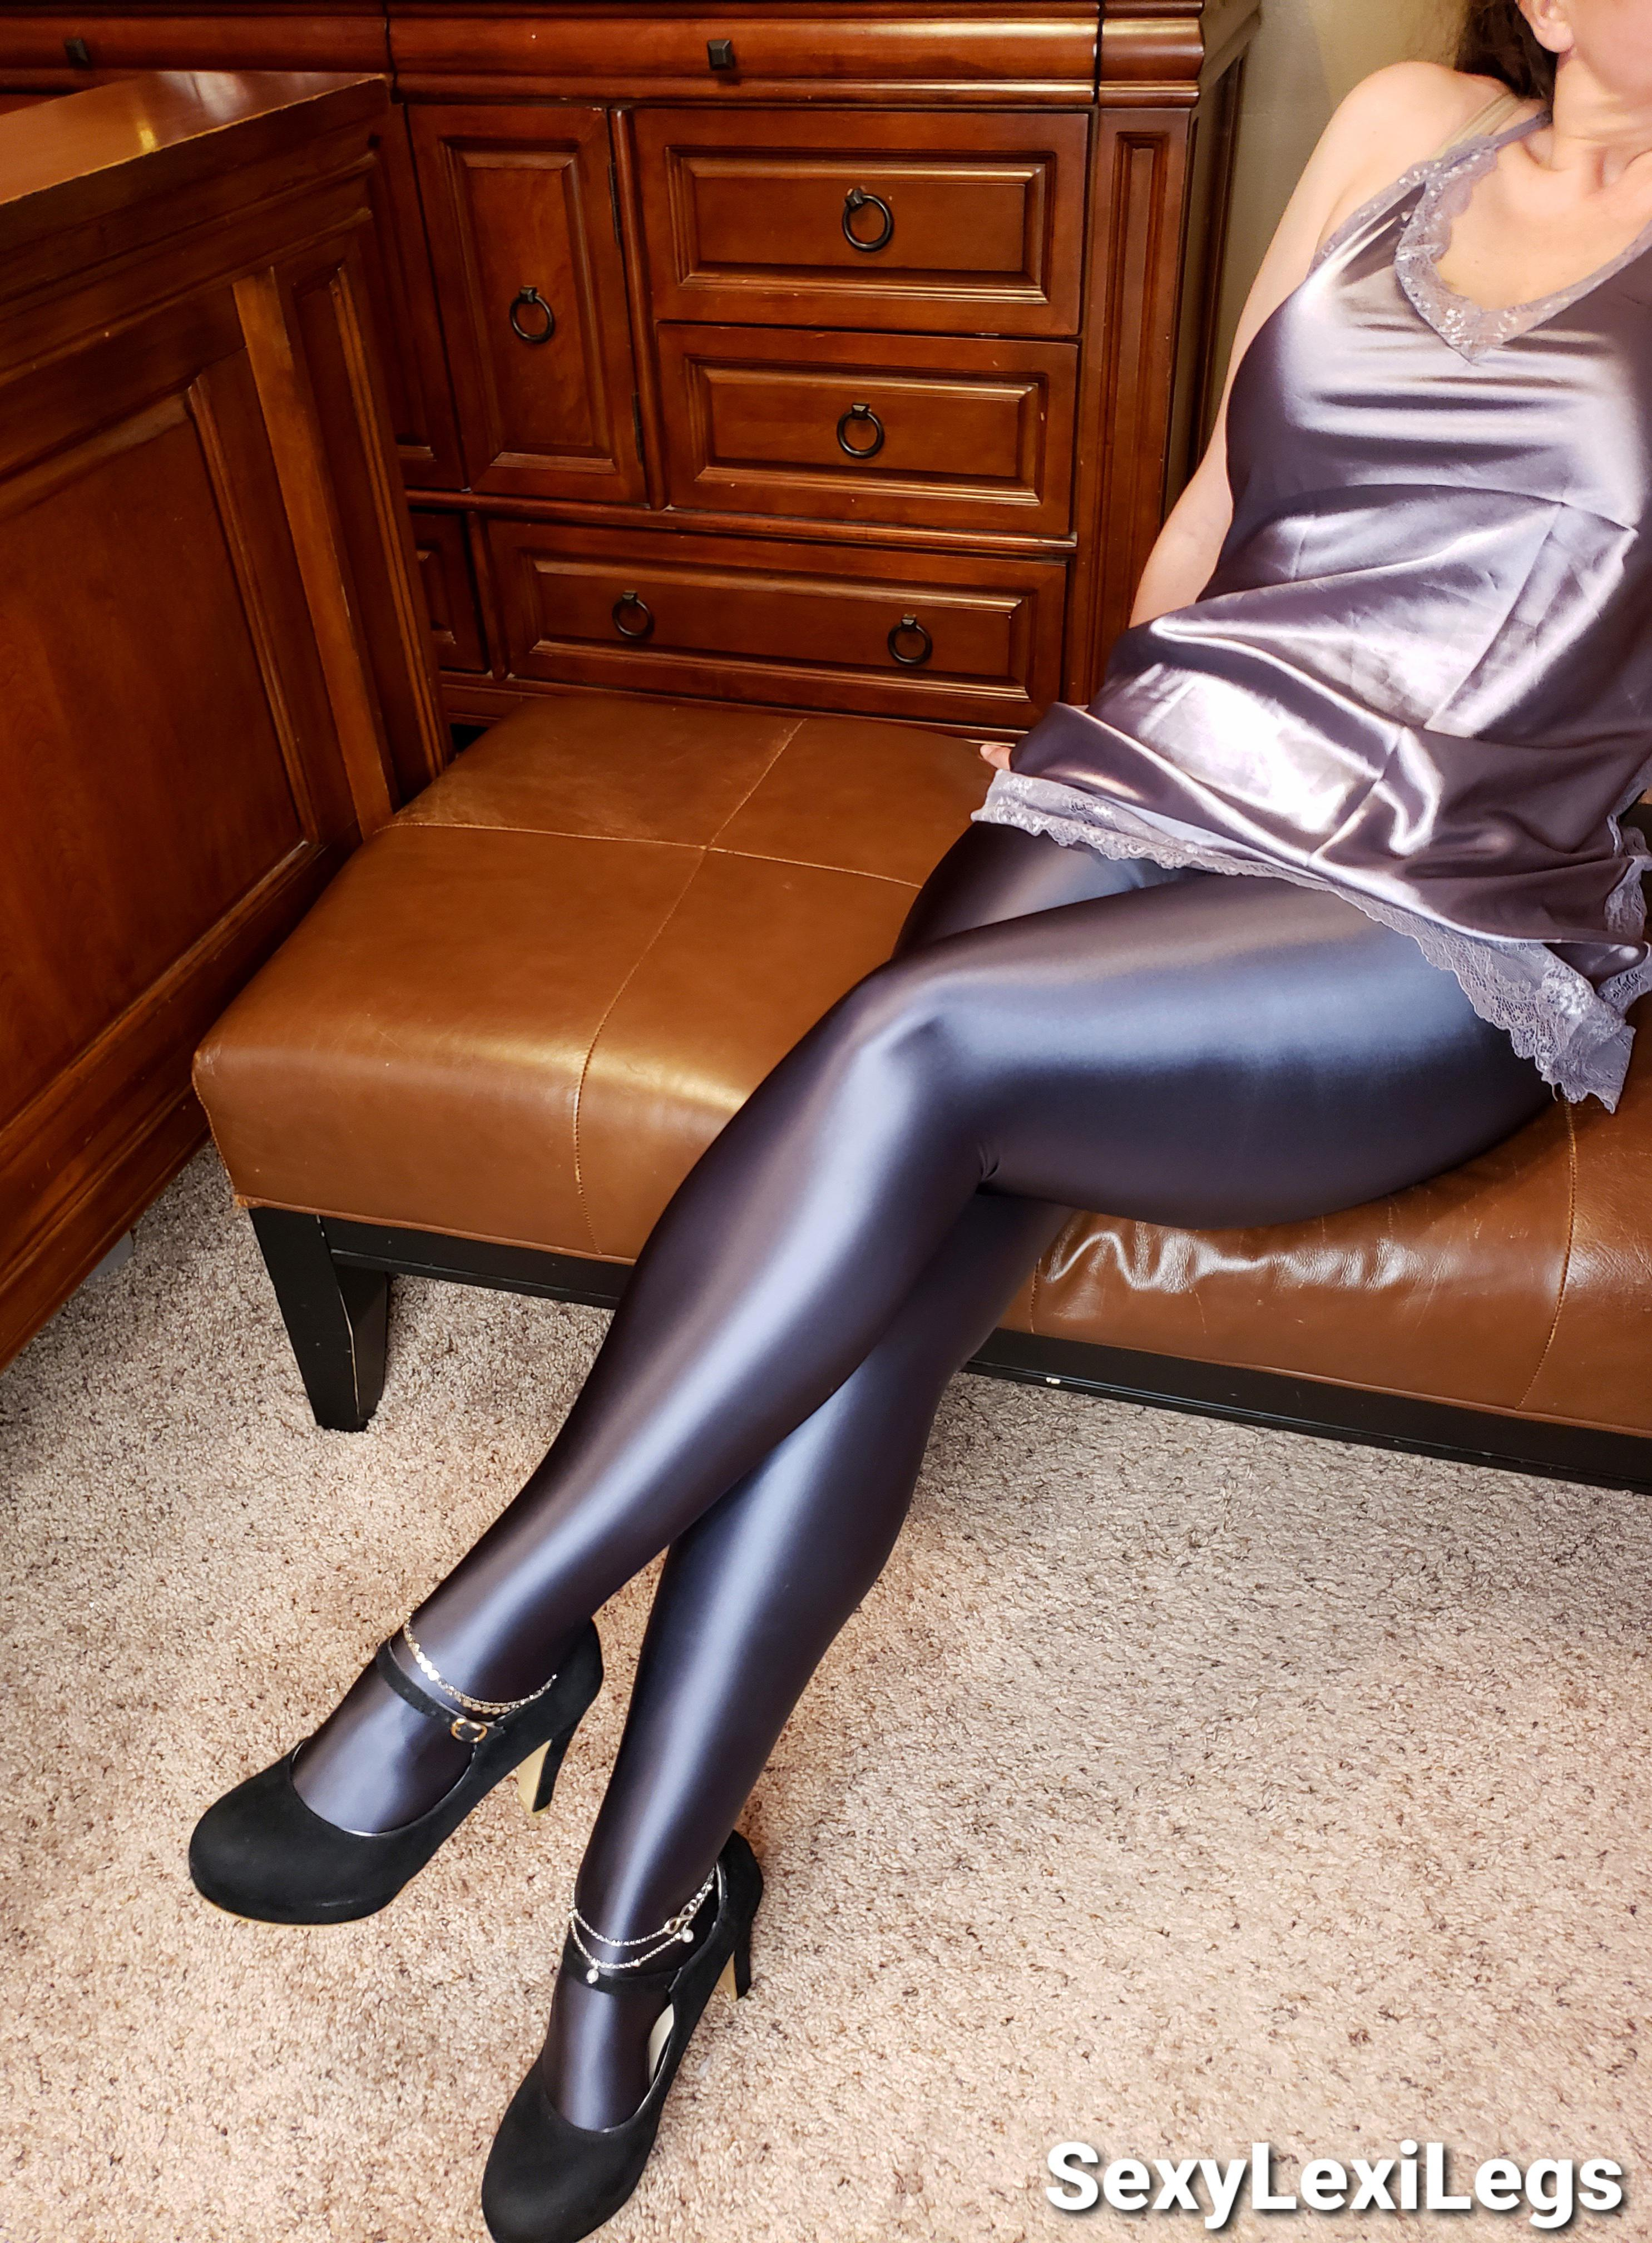 Me Wearing Shiny LEOHEX Tights, Silky Nighty, And High Heels! They Feel As Amazing As They Look! 😍